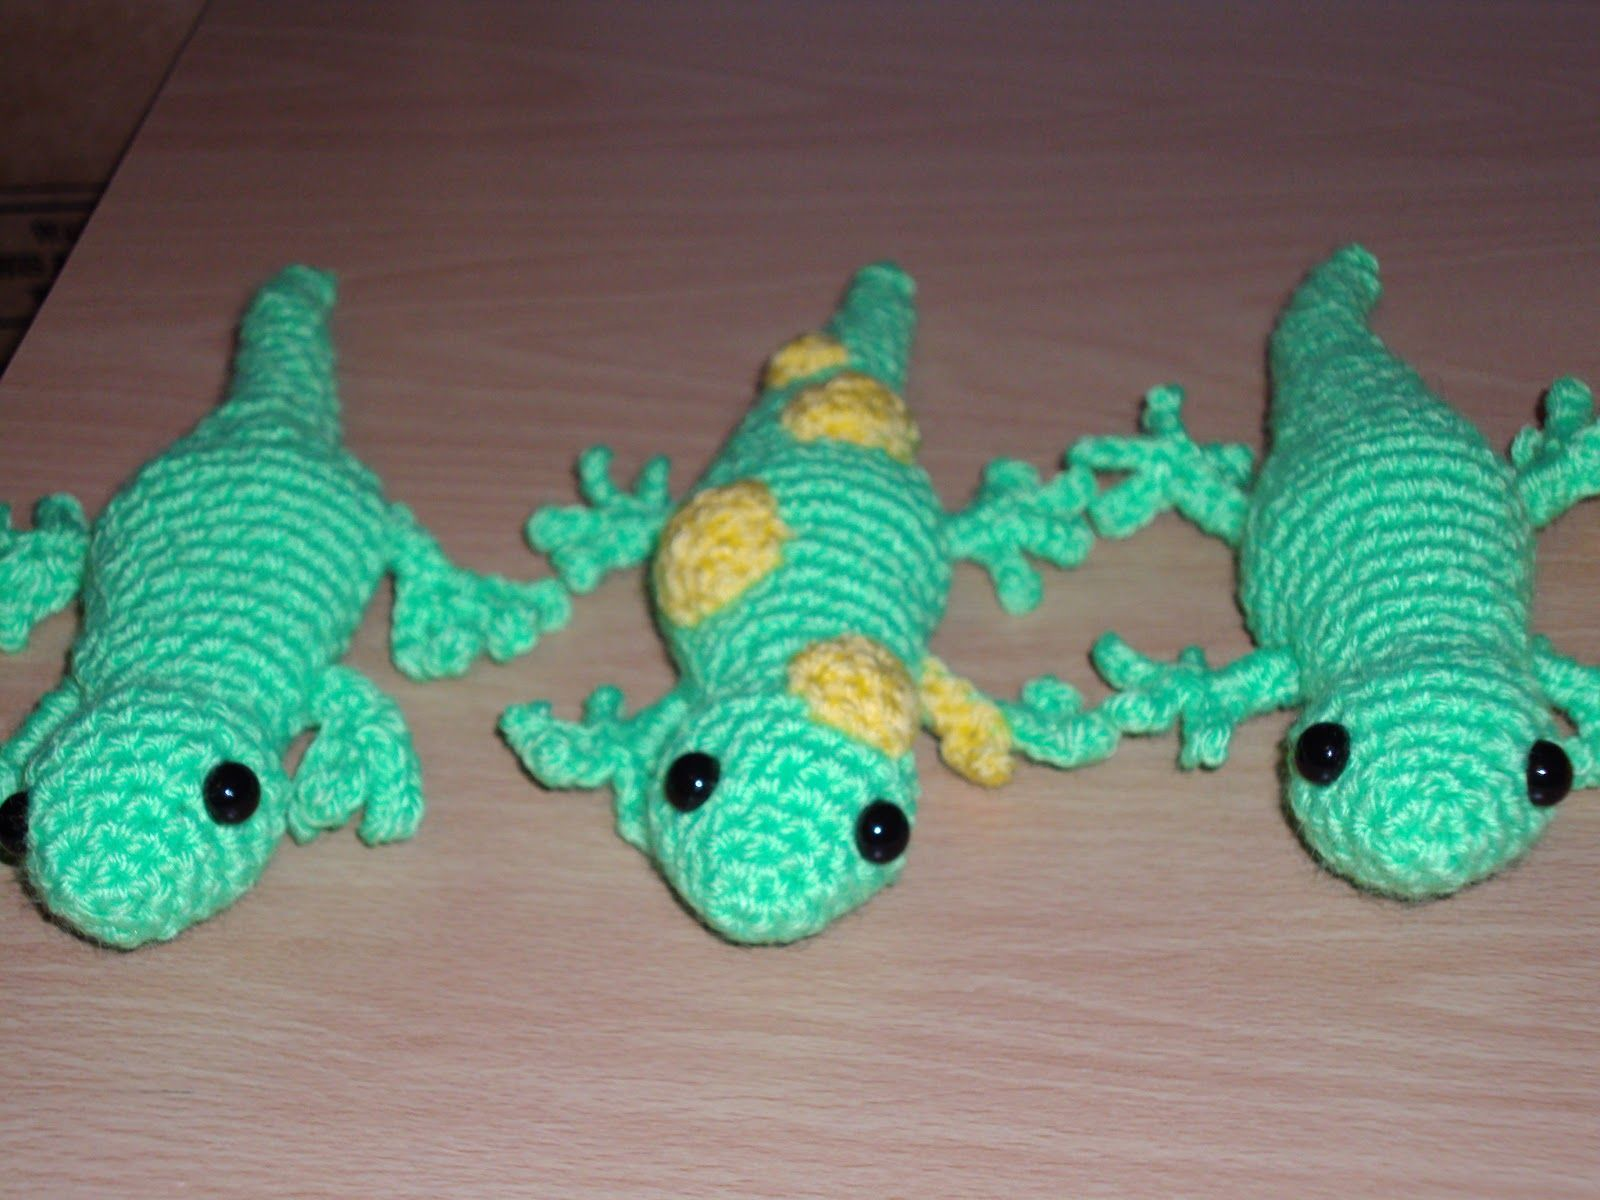 Free crochet lizard patterns fasten off fold leg in half free crochet lizard patterns fasten off fold leg in half lengthways and sew together bankloansurffo Images